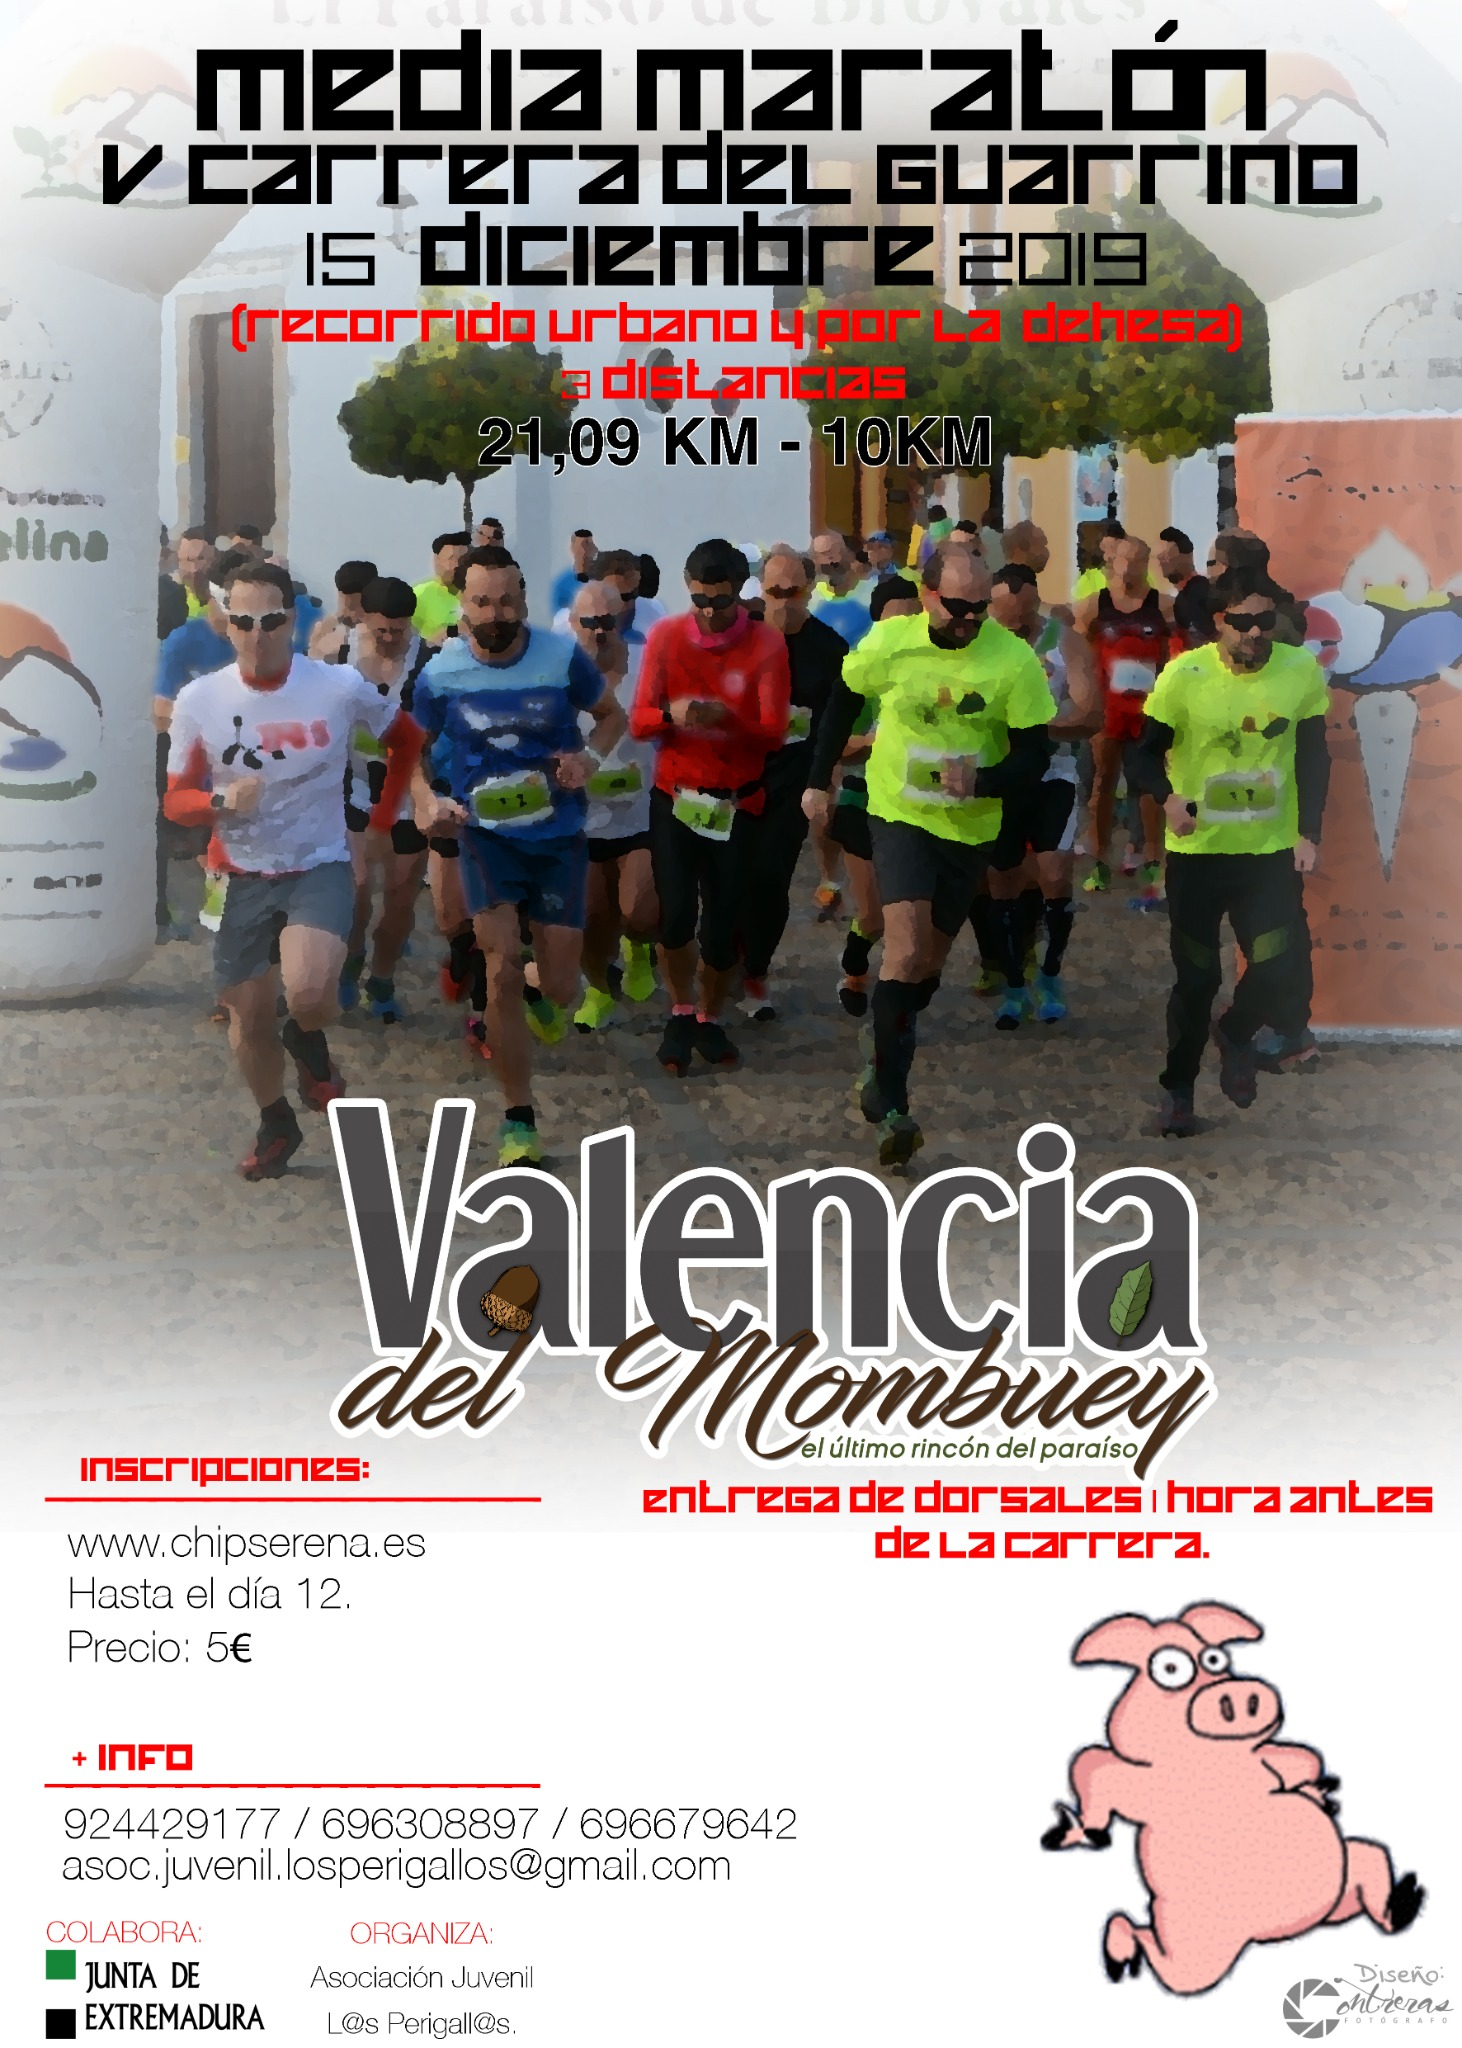 Media Maratón y V Carrera del Guarrino